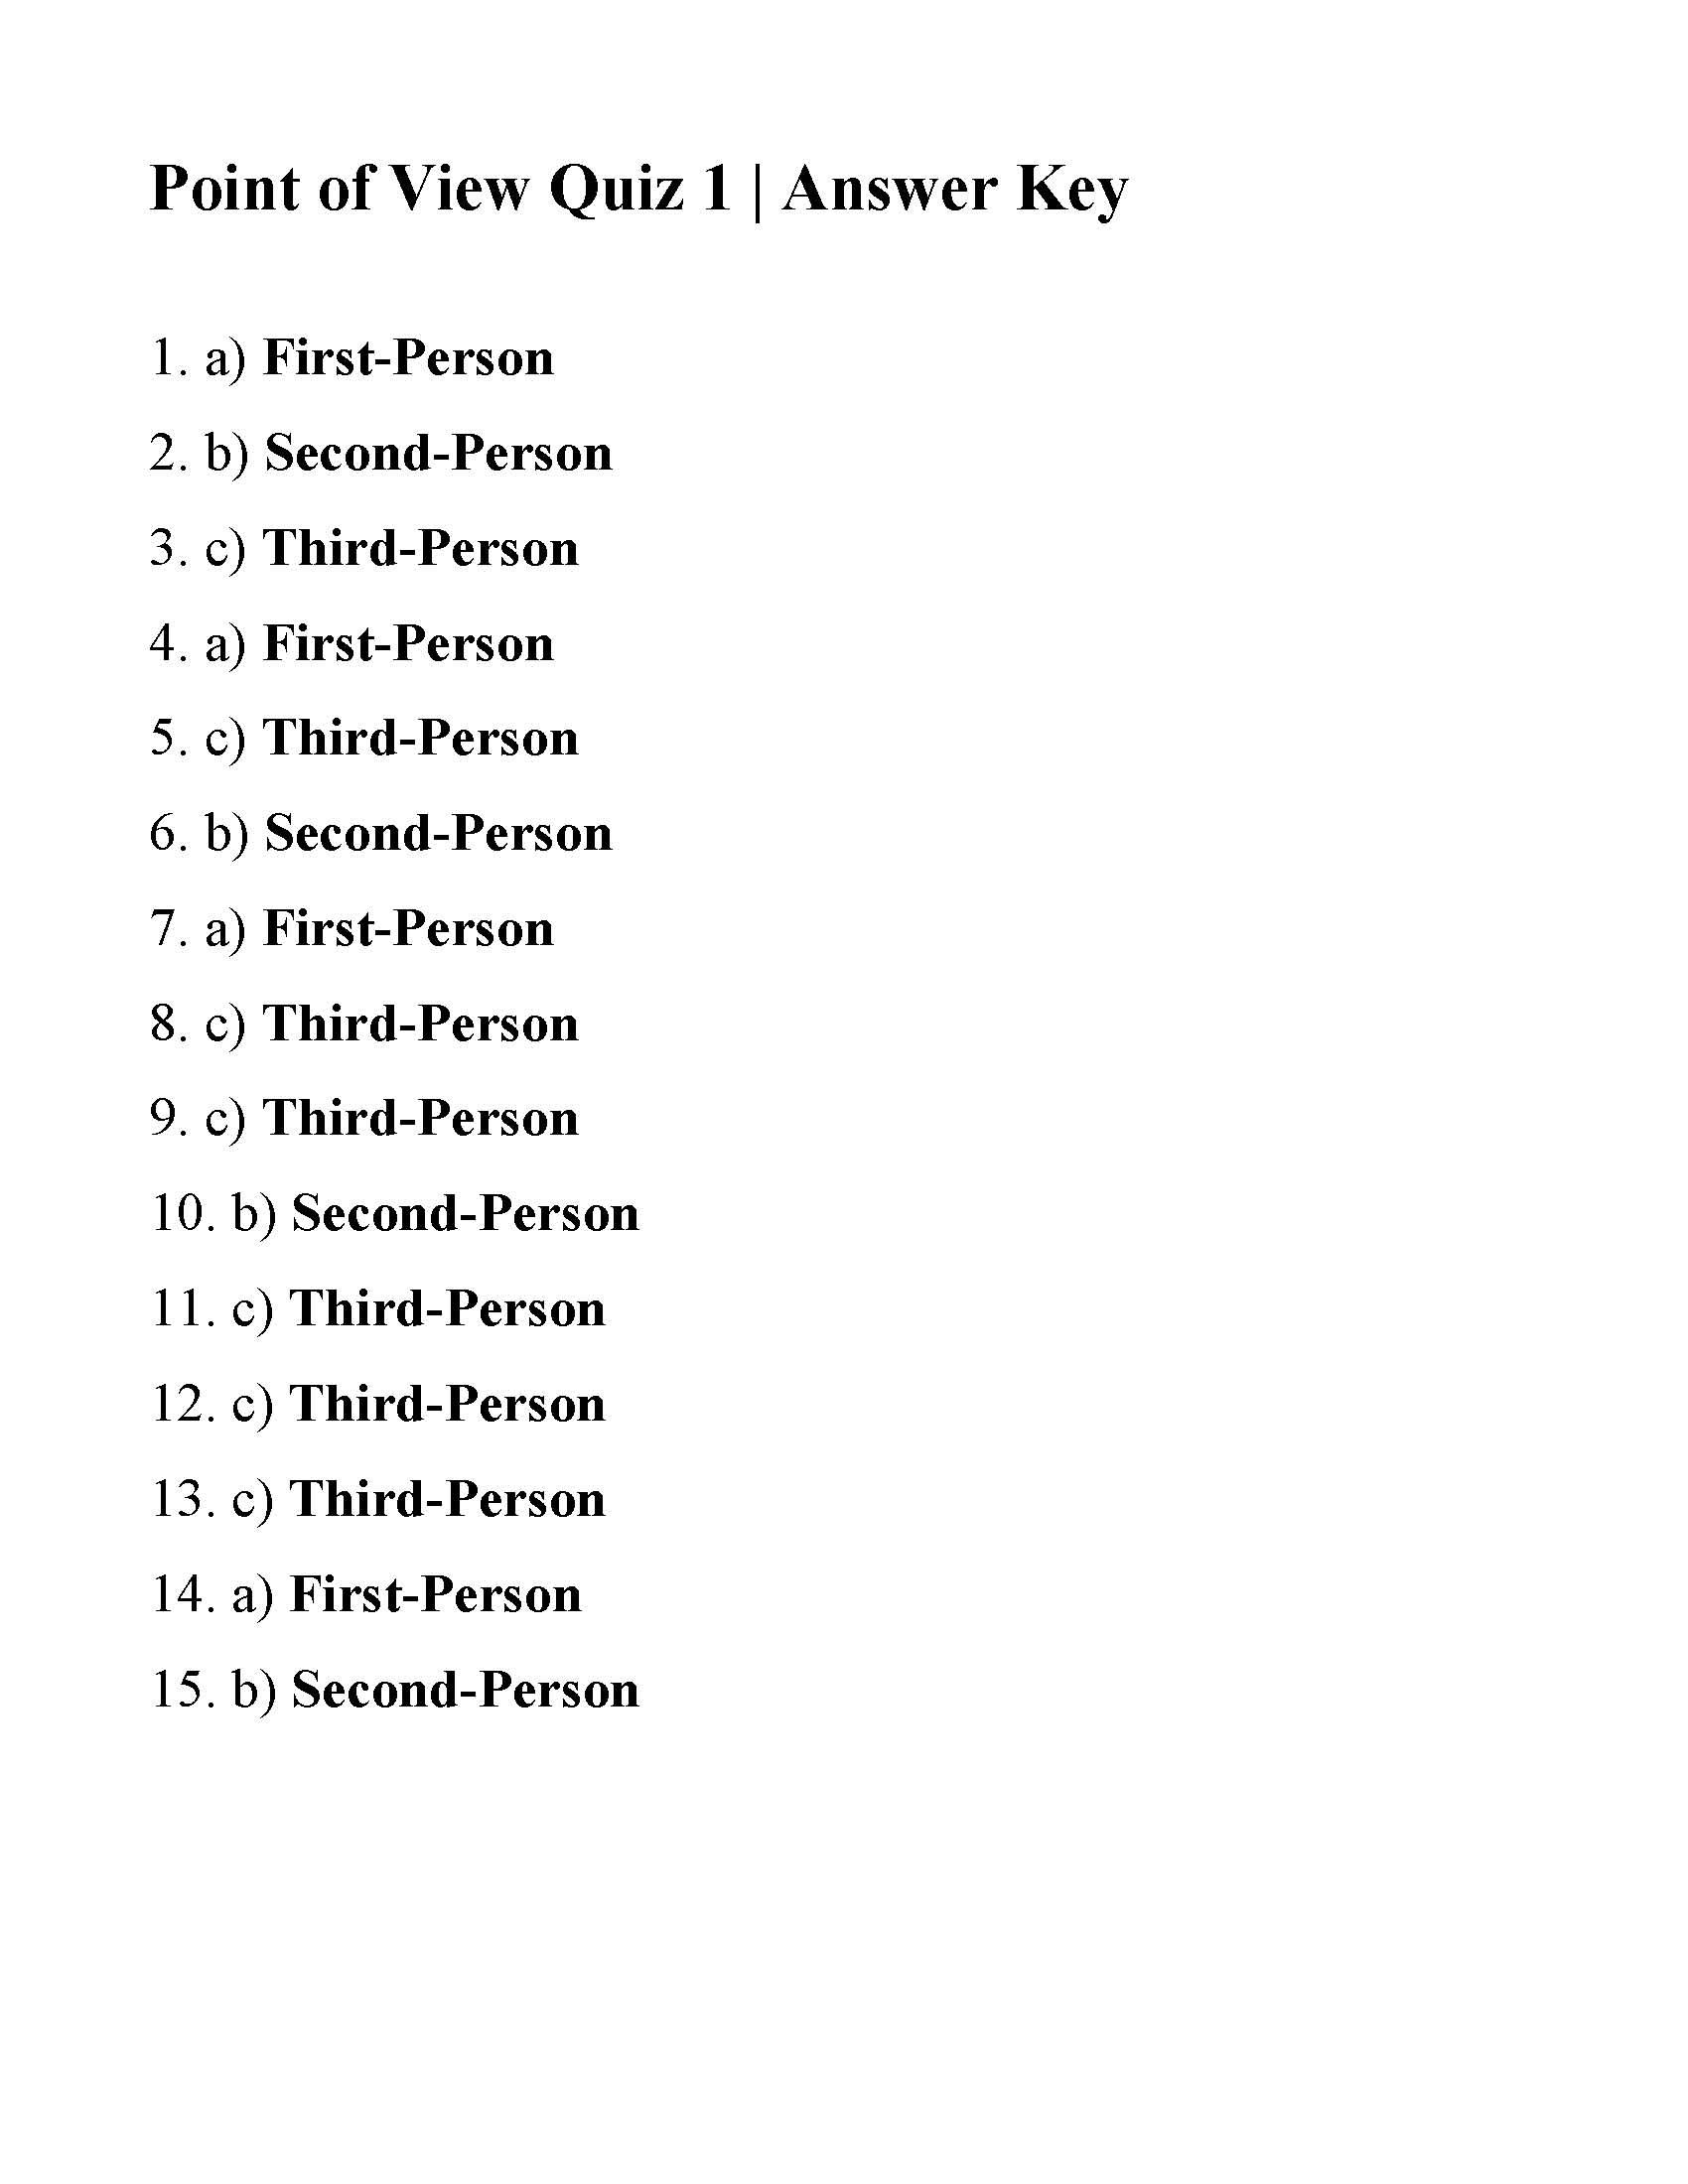 This Is The Answer Key For The Point Of View Quiz 1